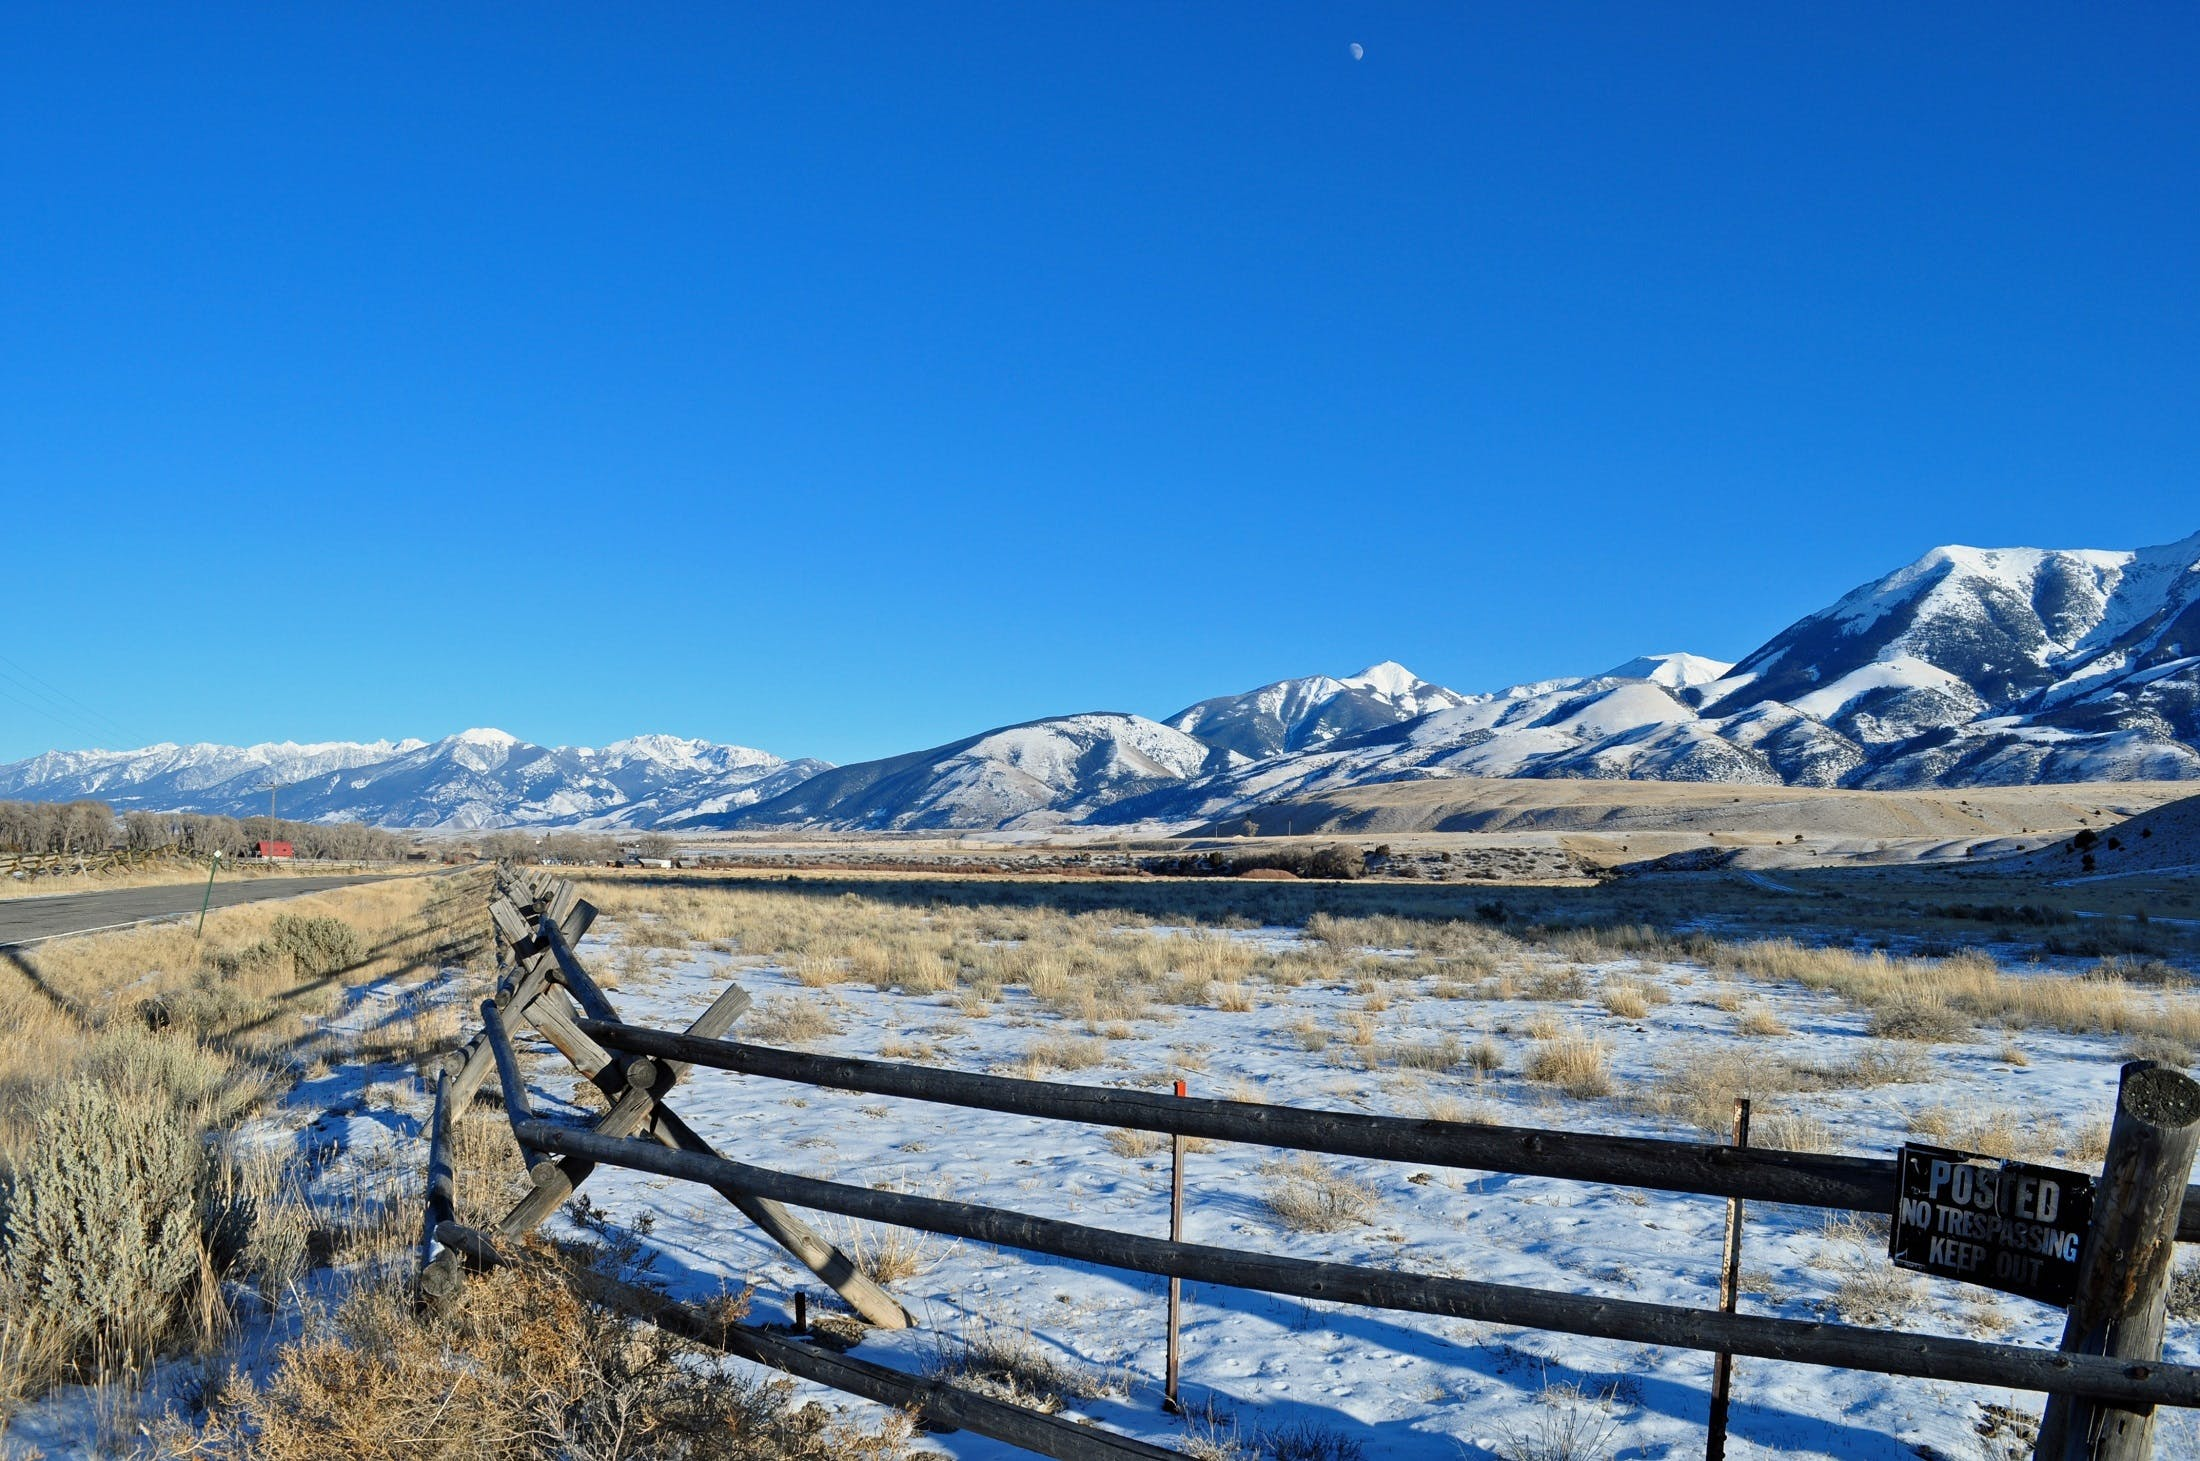 Brown Wooden Fence in Mountain Range